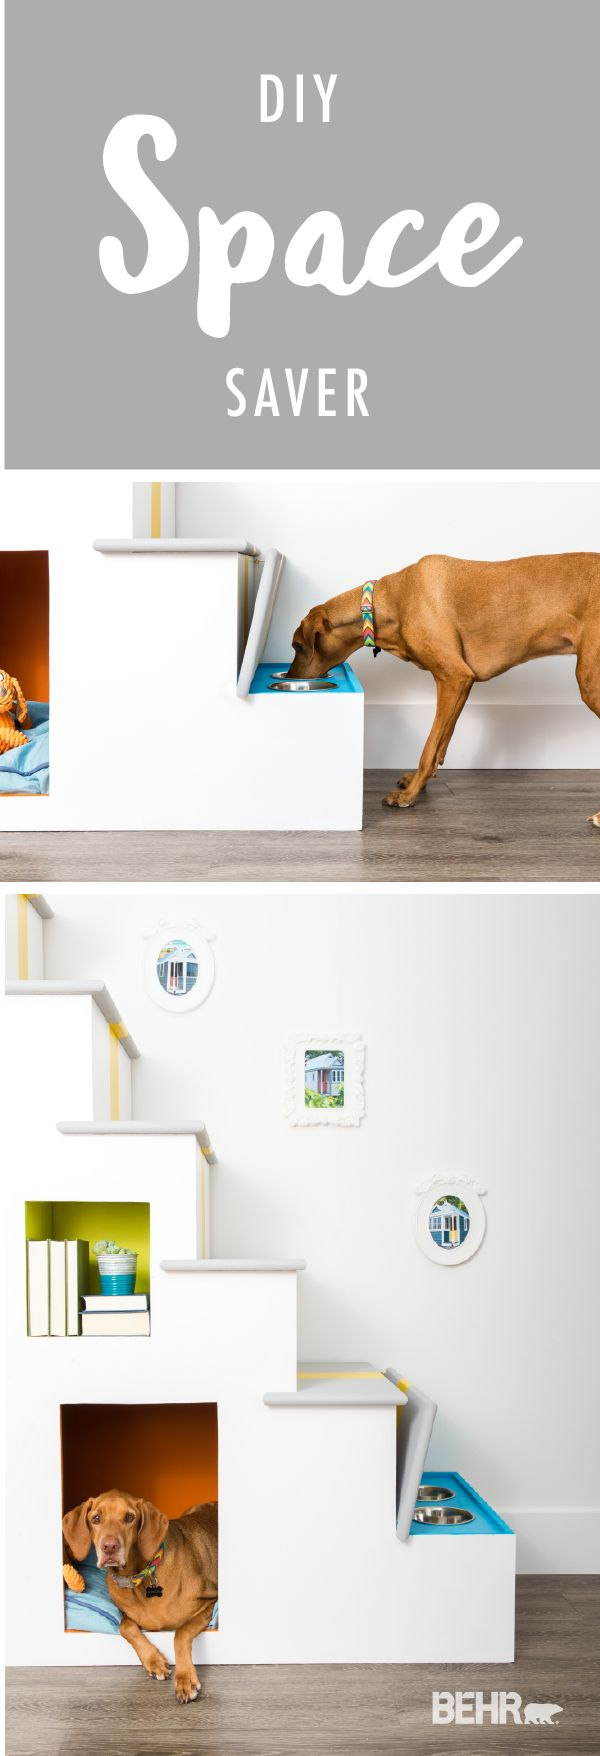 Makeover your small living space with these DIY small space stairs. This fun project is ideal for people with pets who don't have much storage space. Add a feeding station and room for a pet bed so your furry friends can enjoy this stylish statement piece as much as you will.